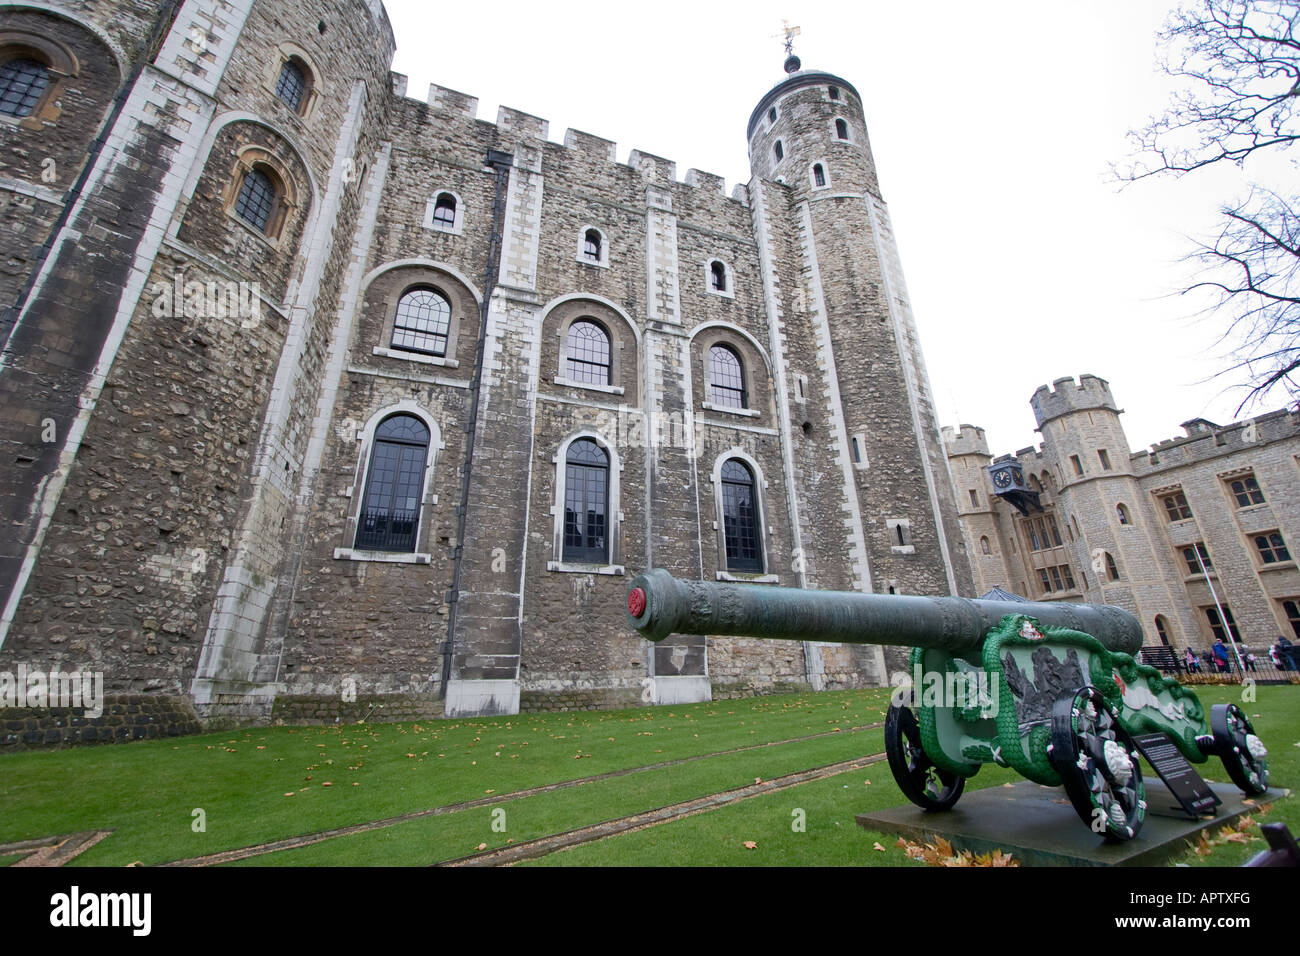 Prussian canon seized as a spoil of war on display at the Tower of London in London UK - Stock Image